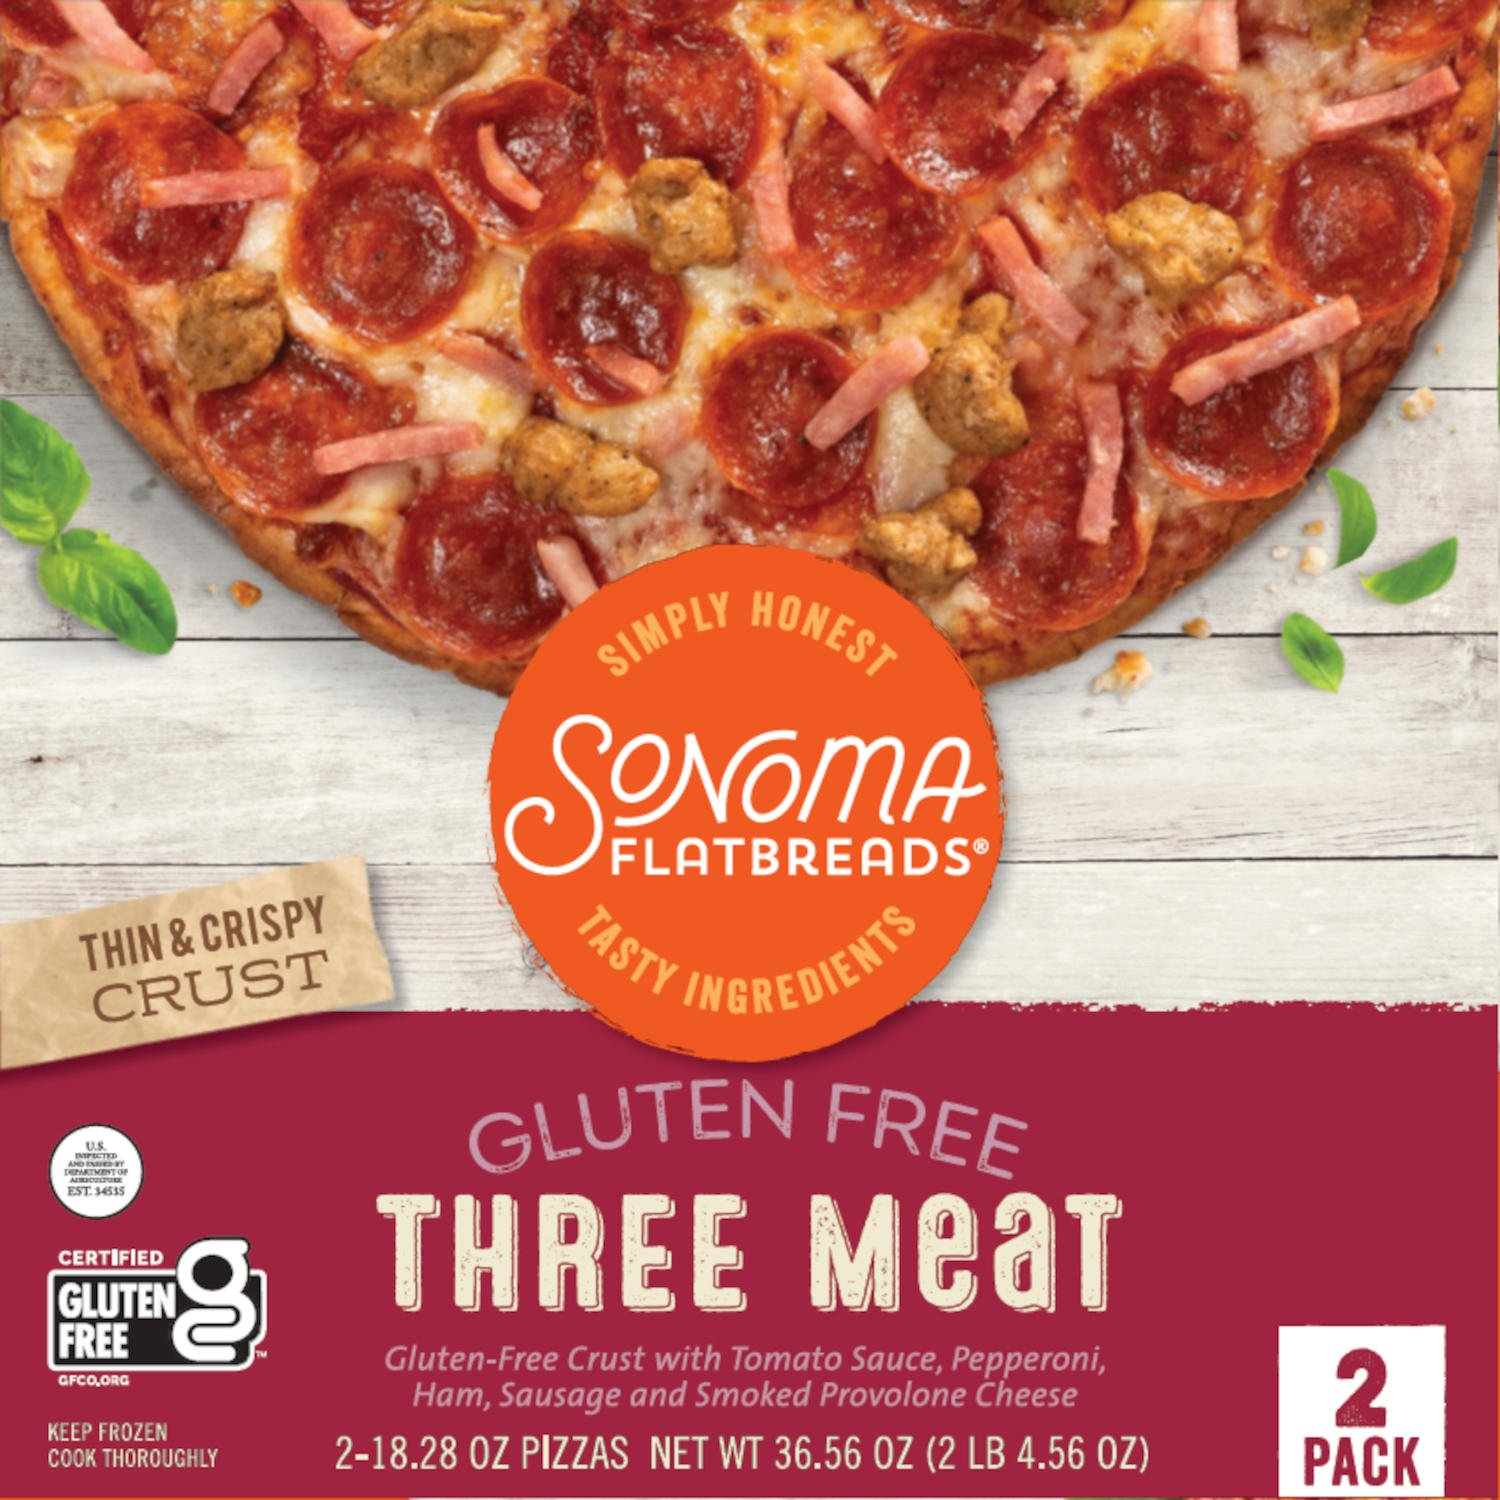 Simply Honest Sonoma Flatbreads Three Meat Front